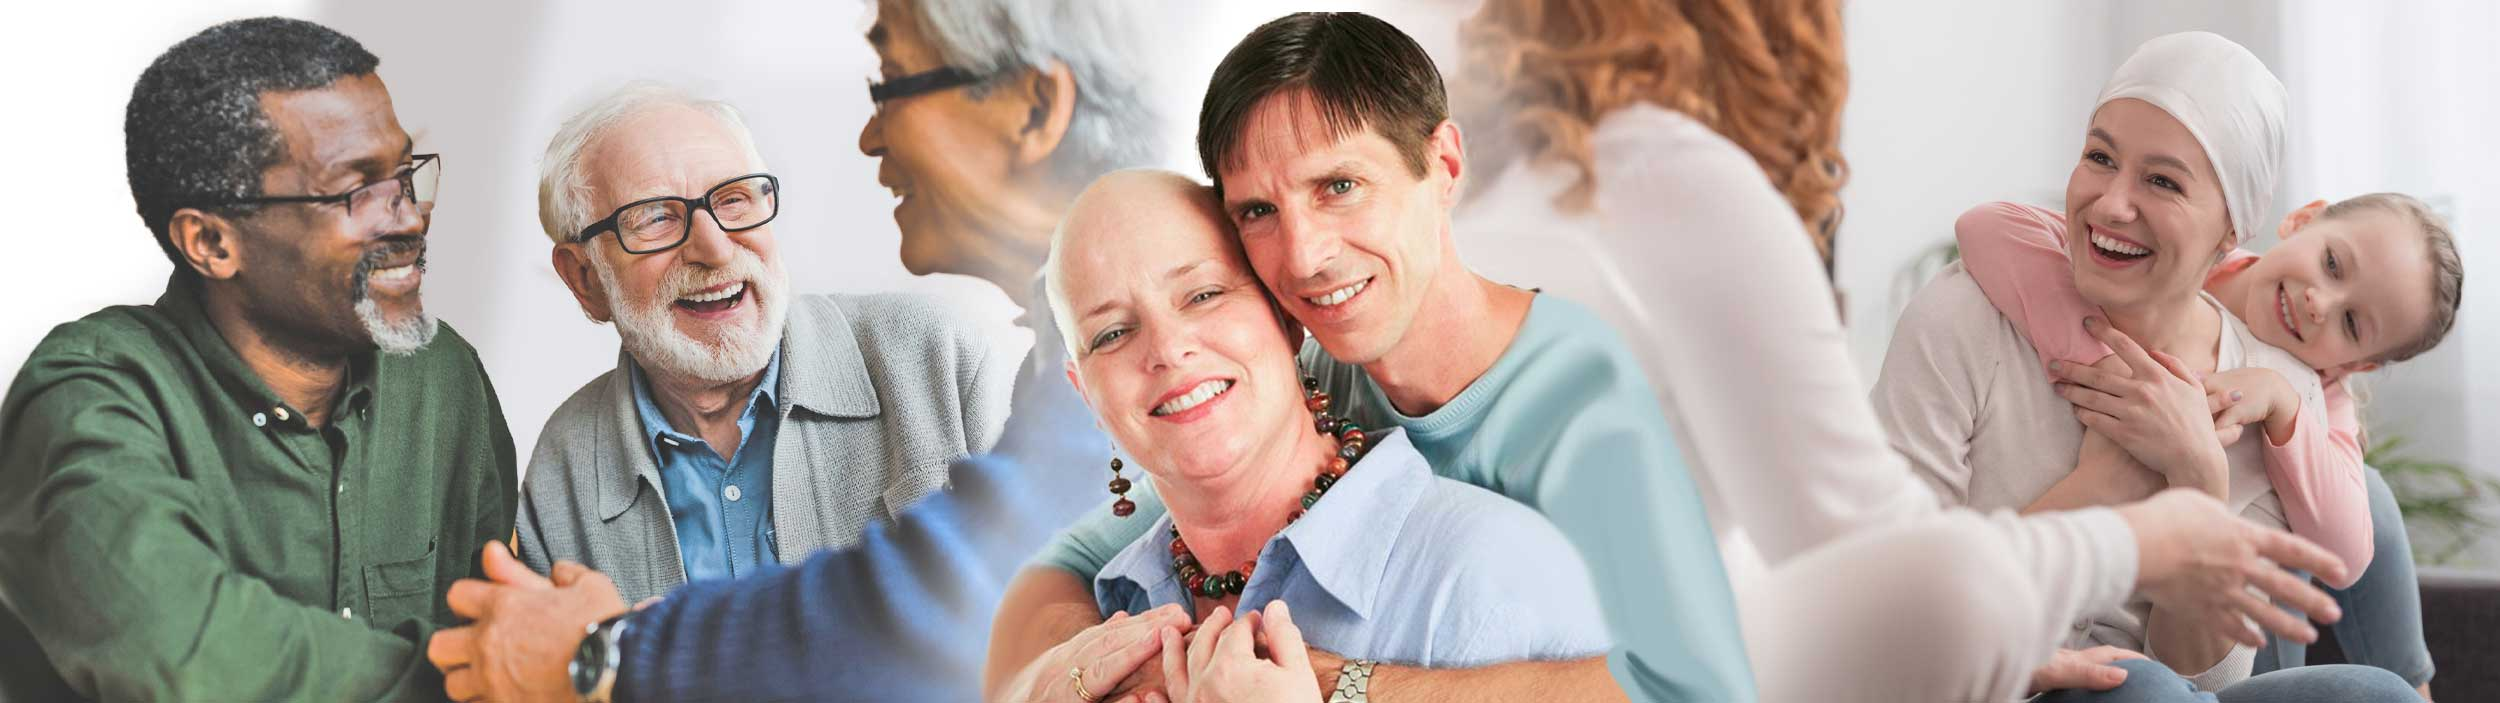 collage of people, cancer support